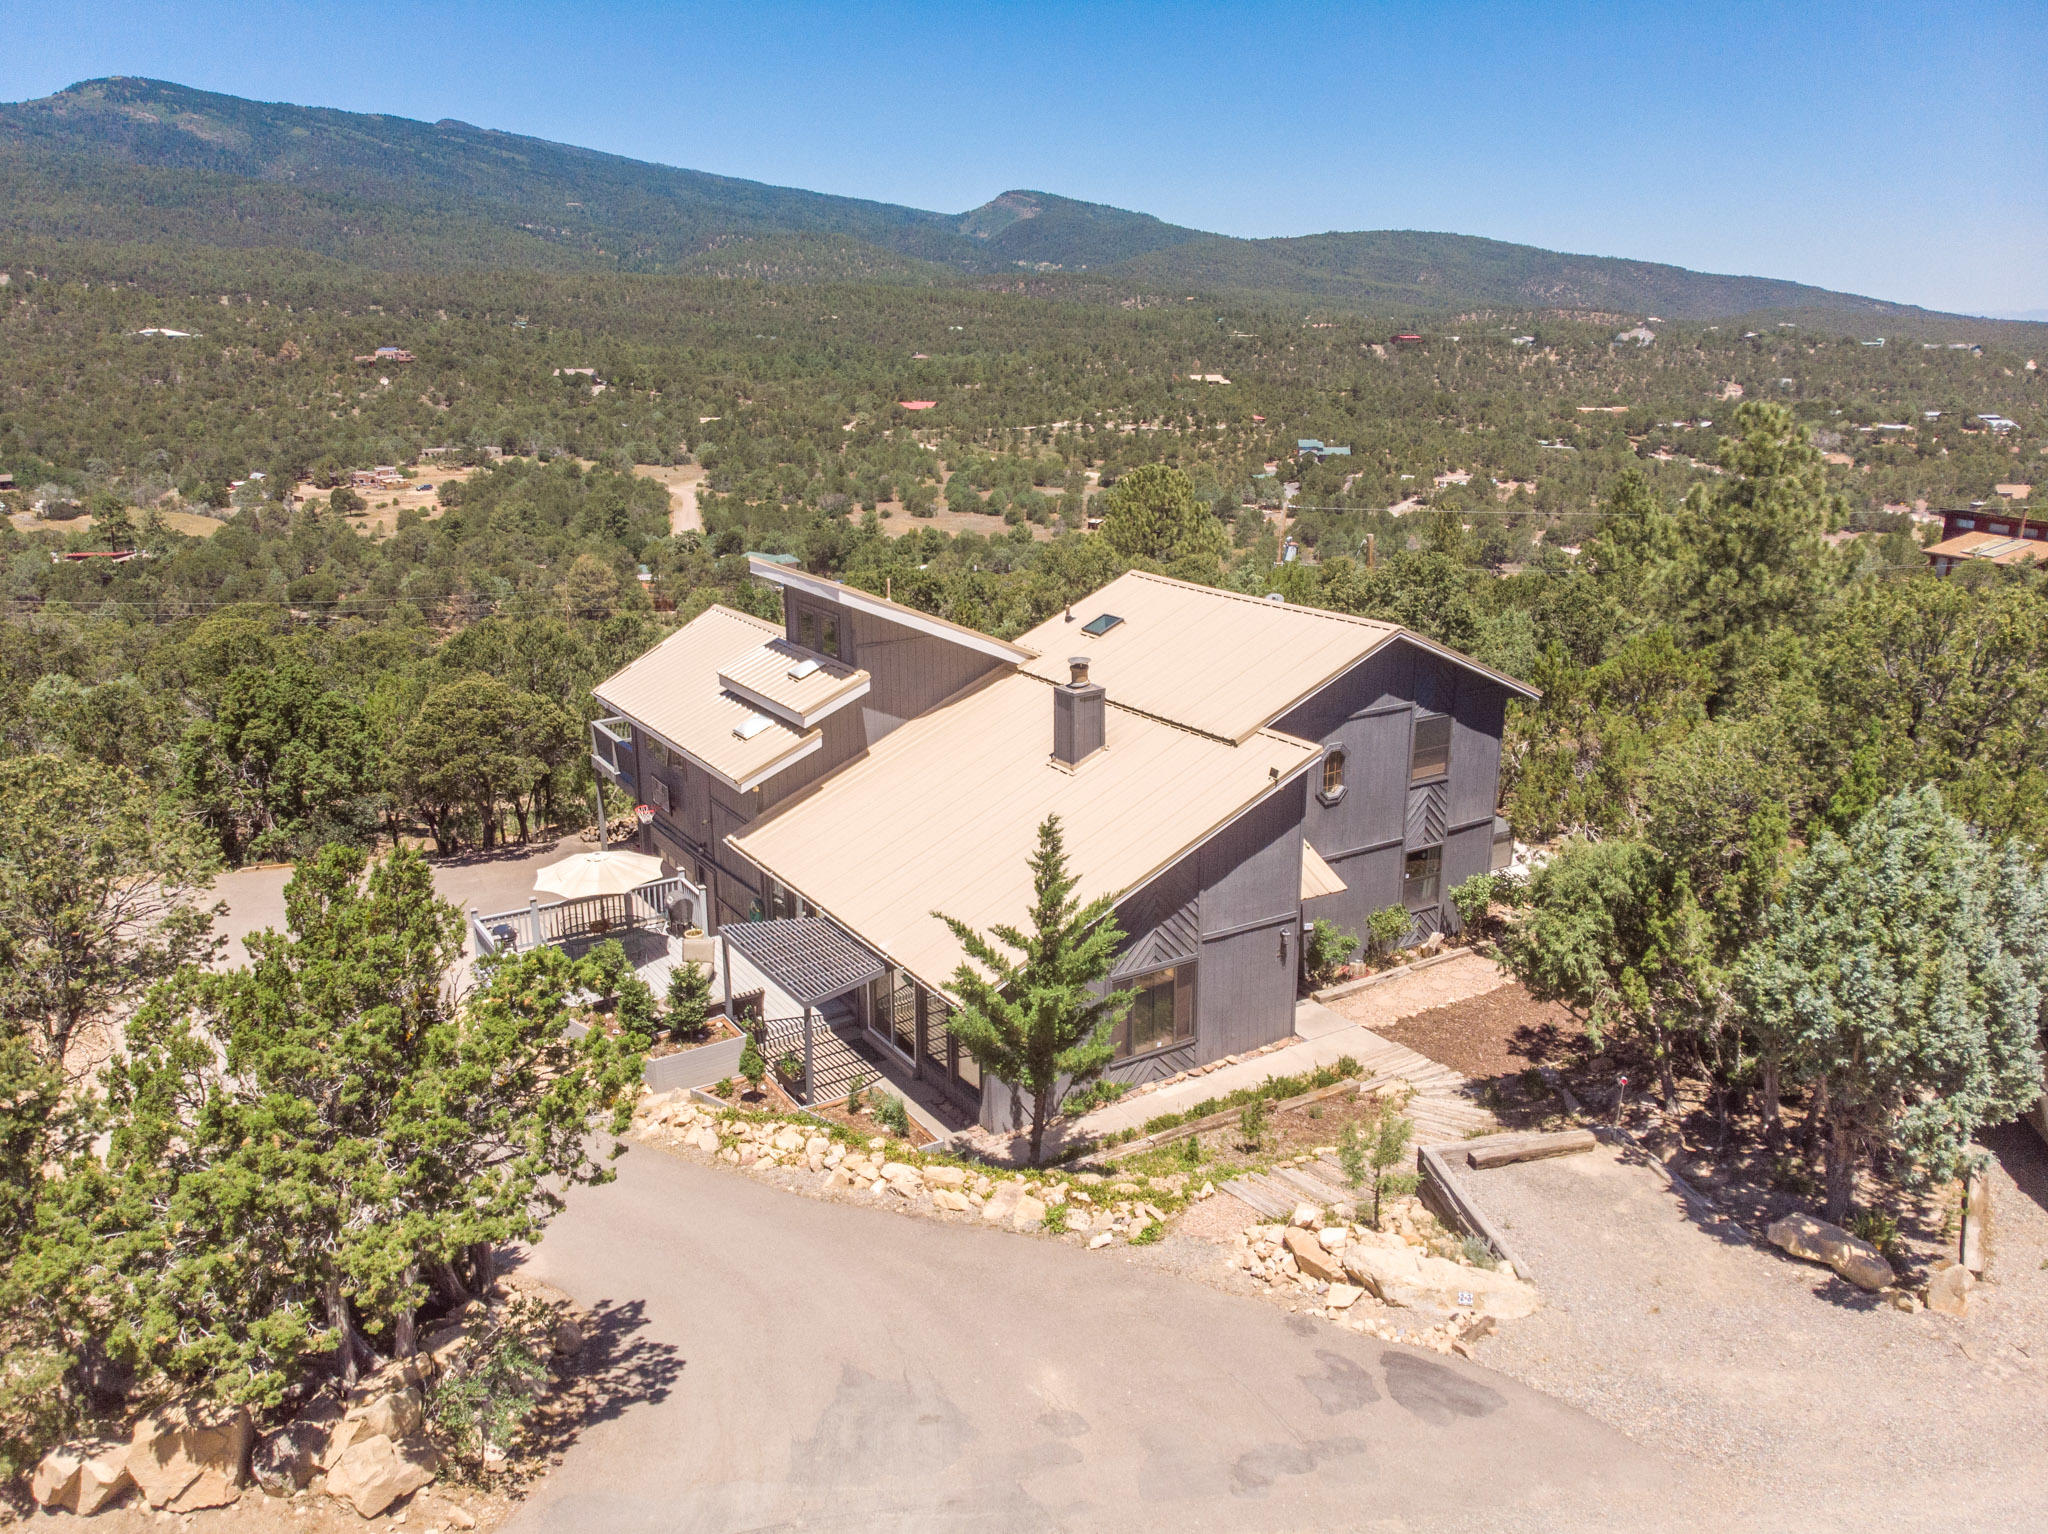 23 RIDGE Drive Property Photo - Cedar Crest, NM real estate listing